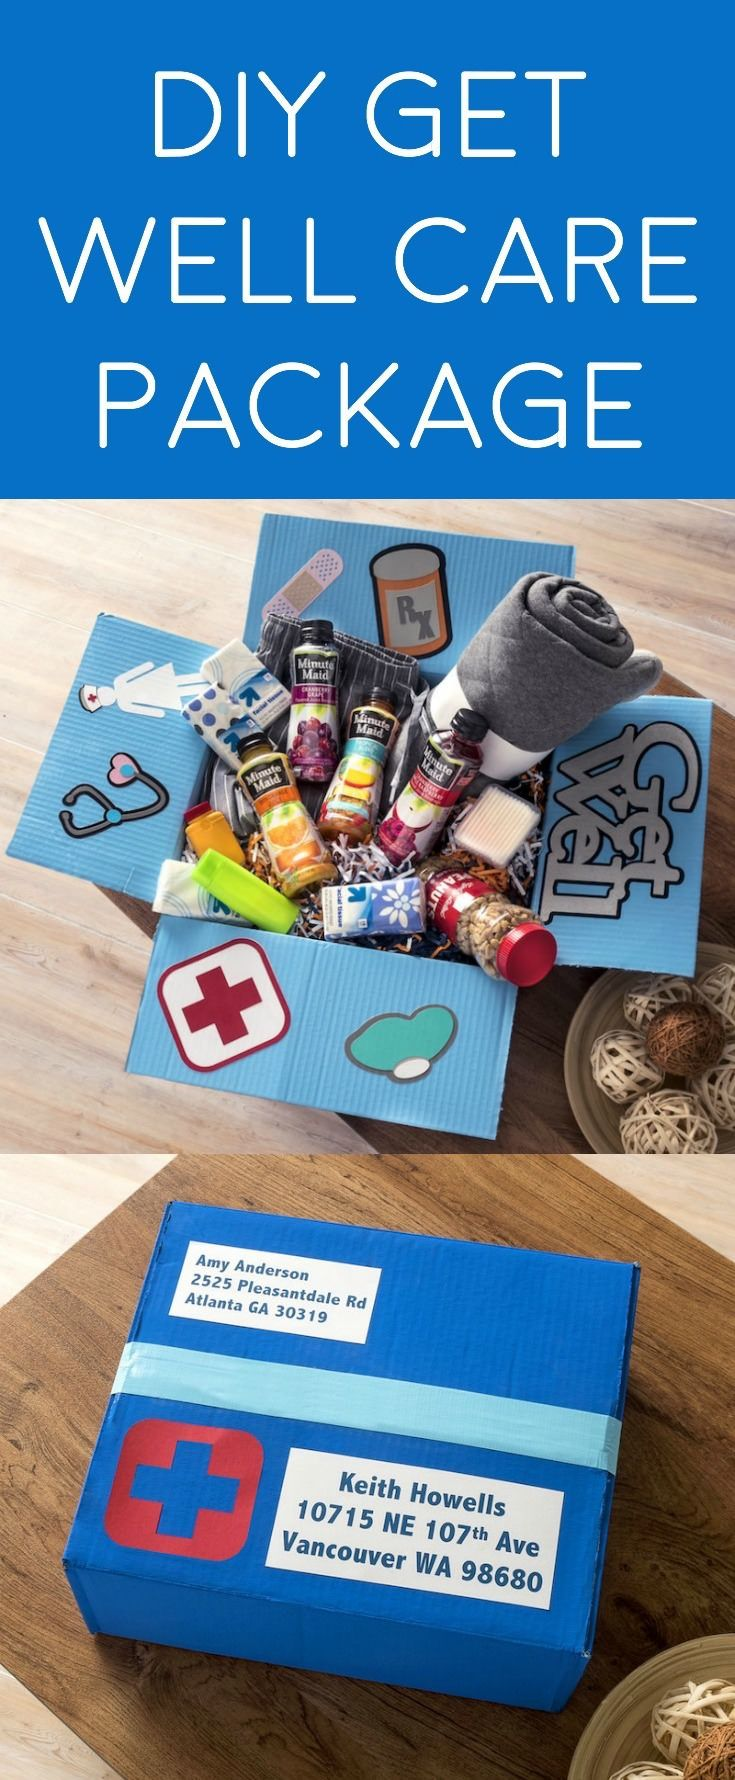 Learn how to make a fabulous get well care package for a friend or family member that is sick or had surgery. Fill it with items they love! via @modpodgerocks #doingood @minutemaid_us #ad